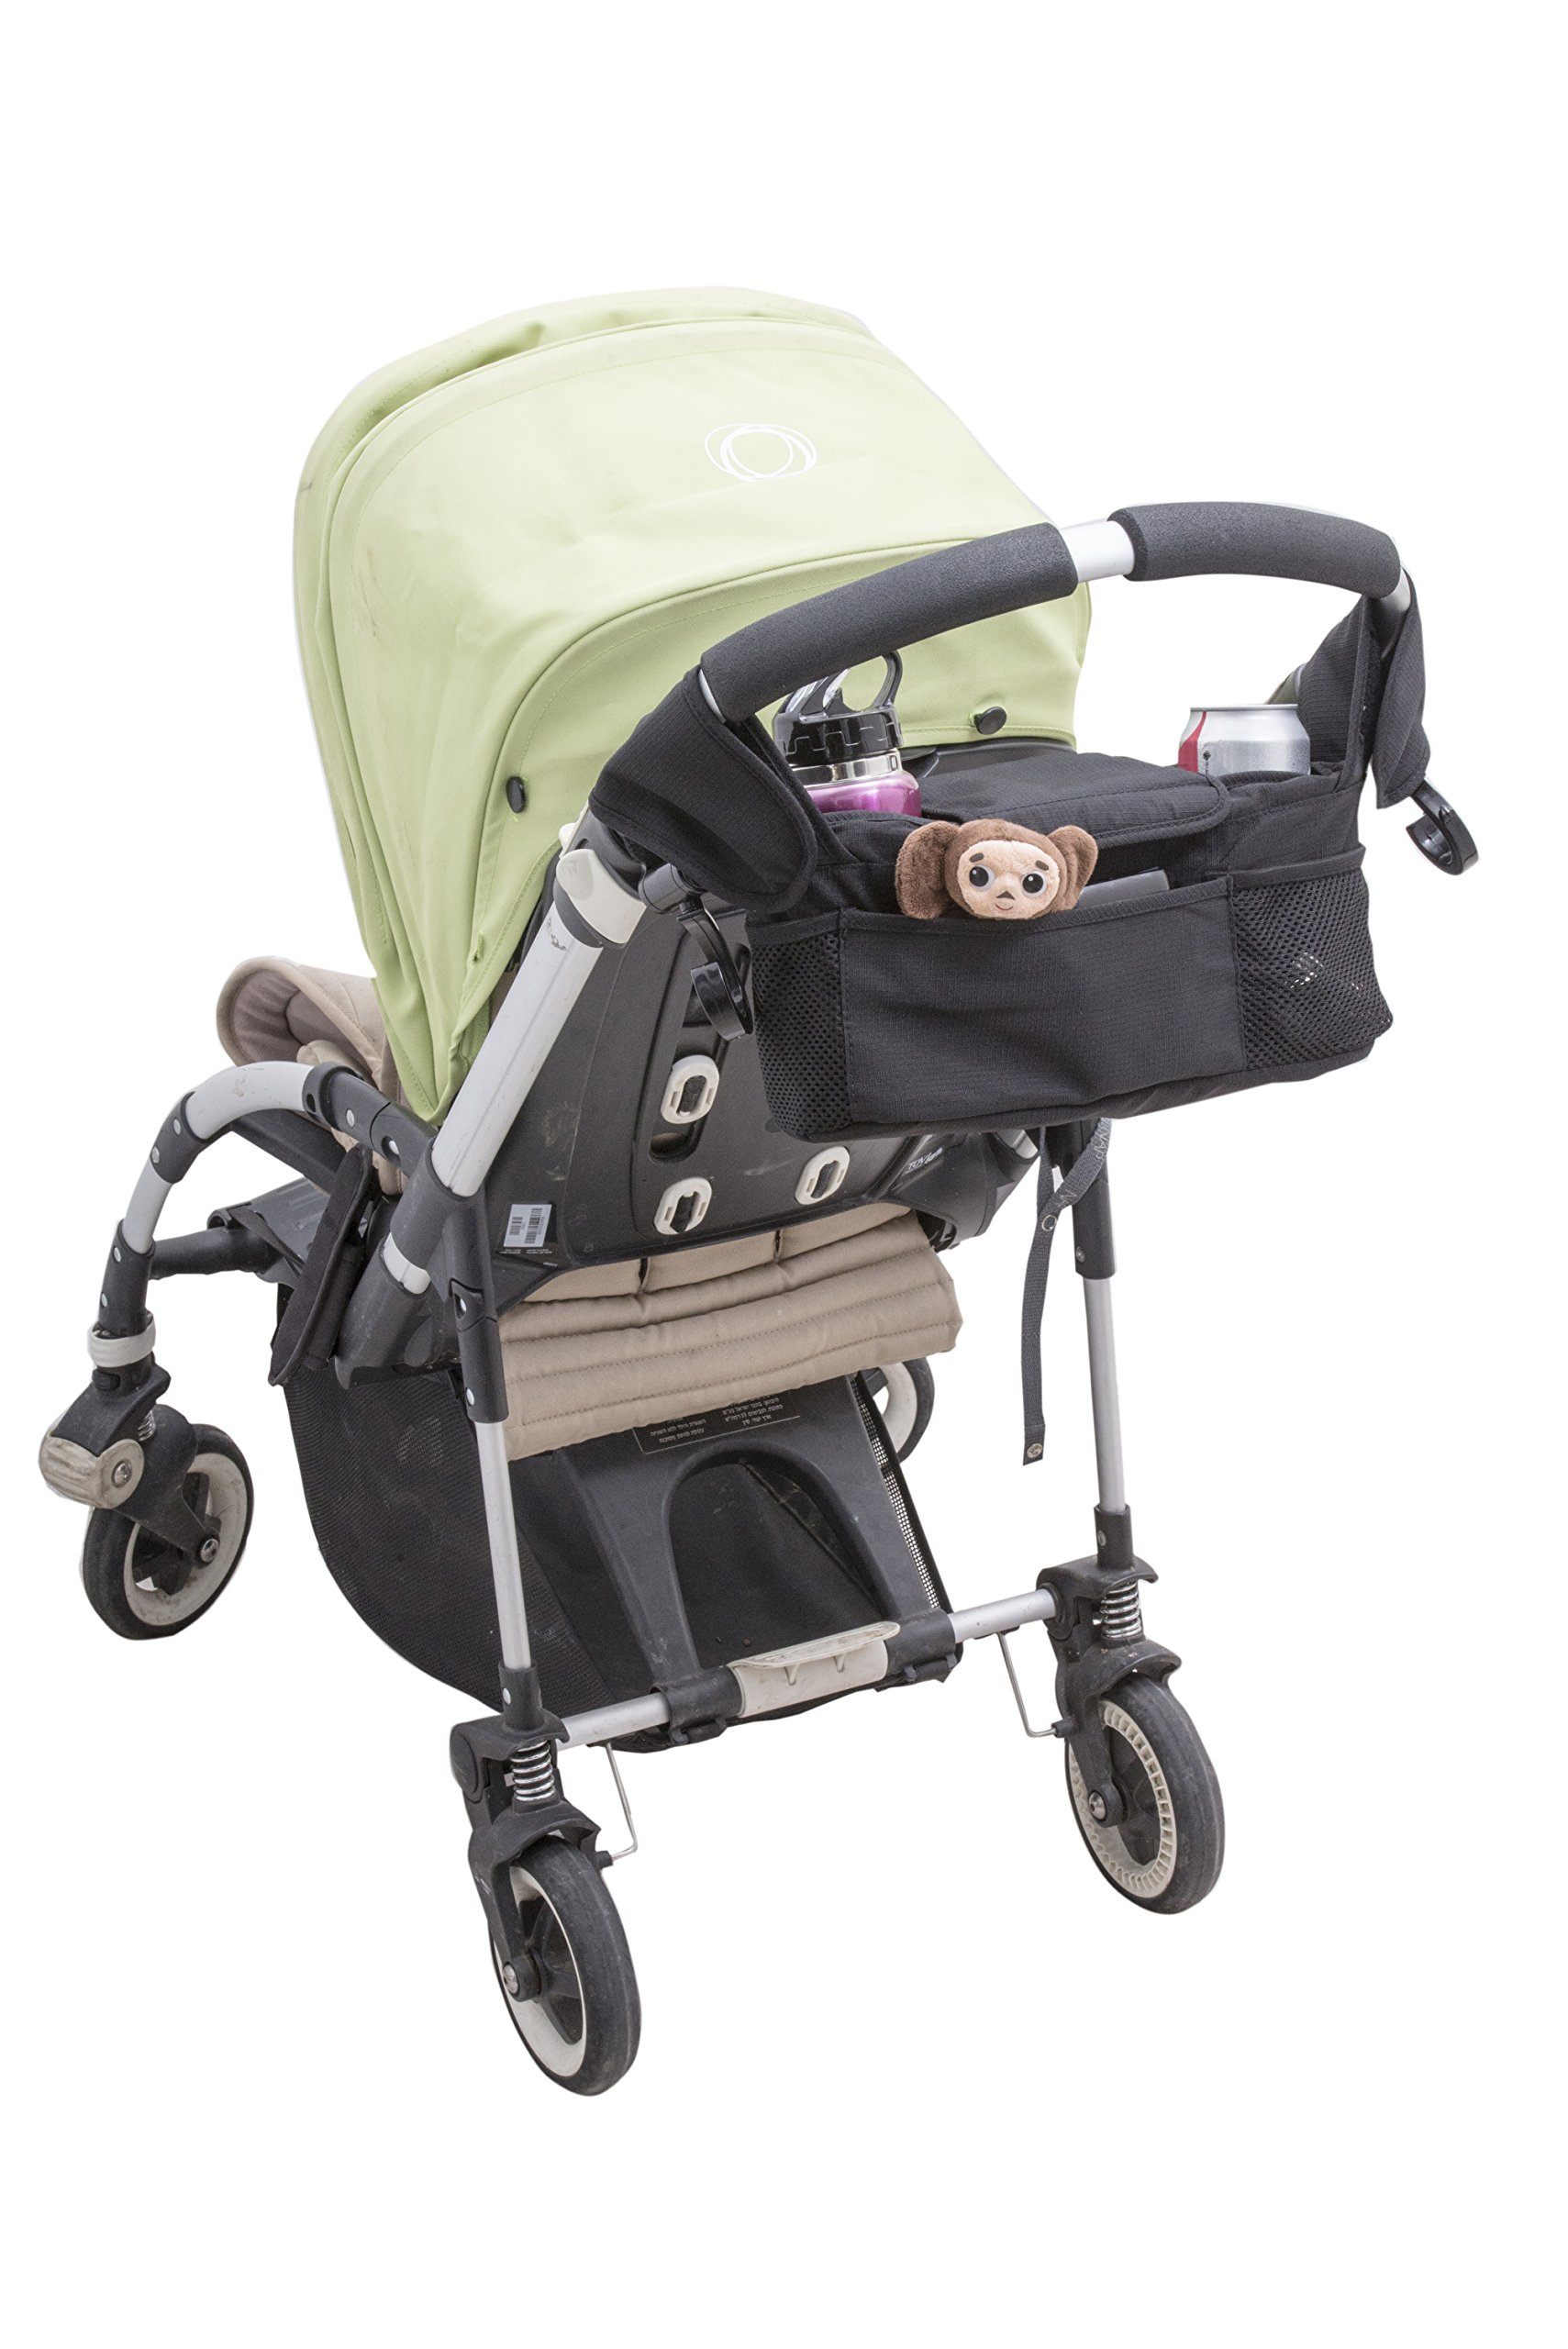 Quality Choices Universal Baby Stroller Organizer with Cup Holder and Two Hooks by Quality Choices (Image #2)